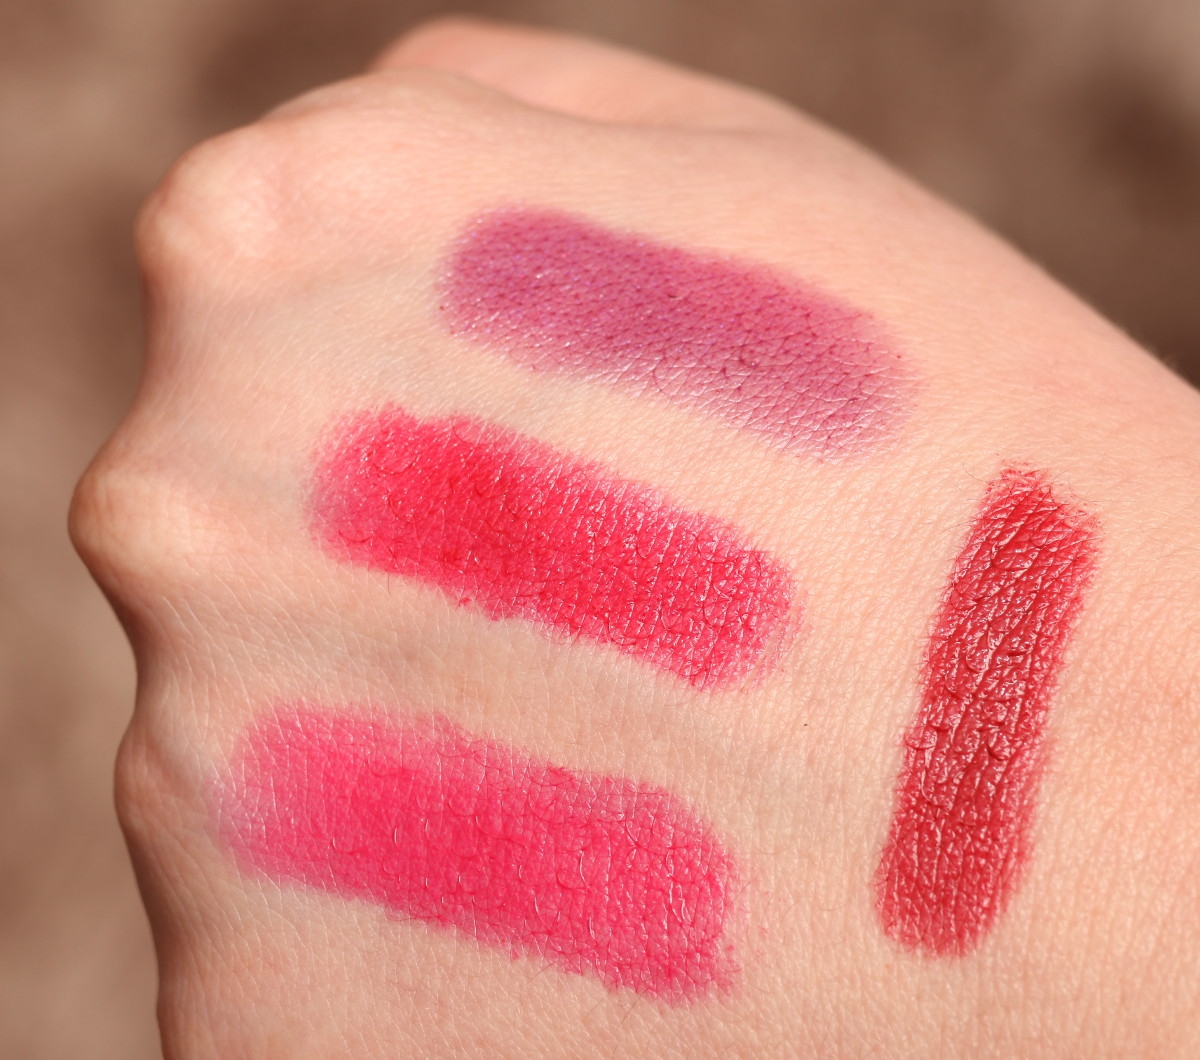 Marc Jacobs Lovemarc lipstick swatches